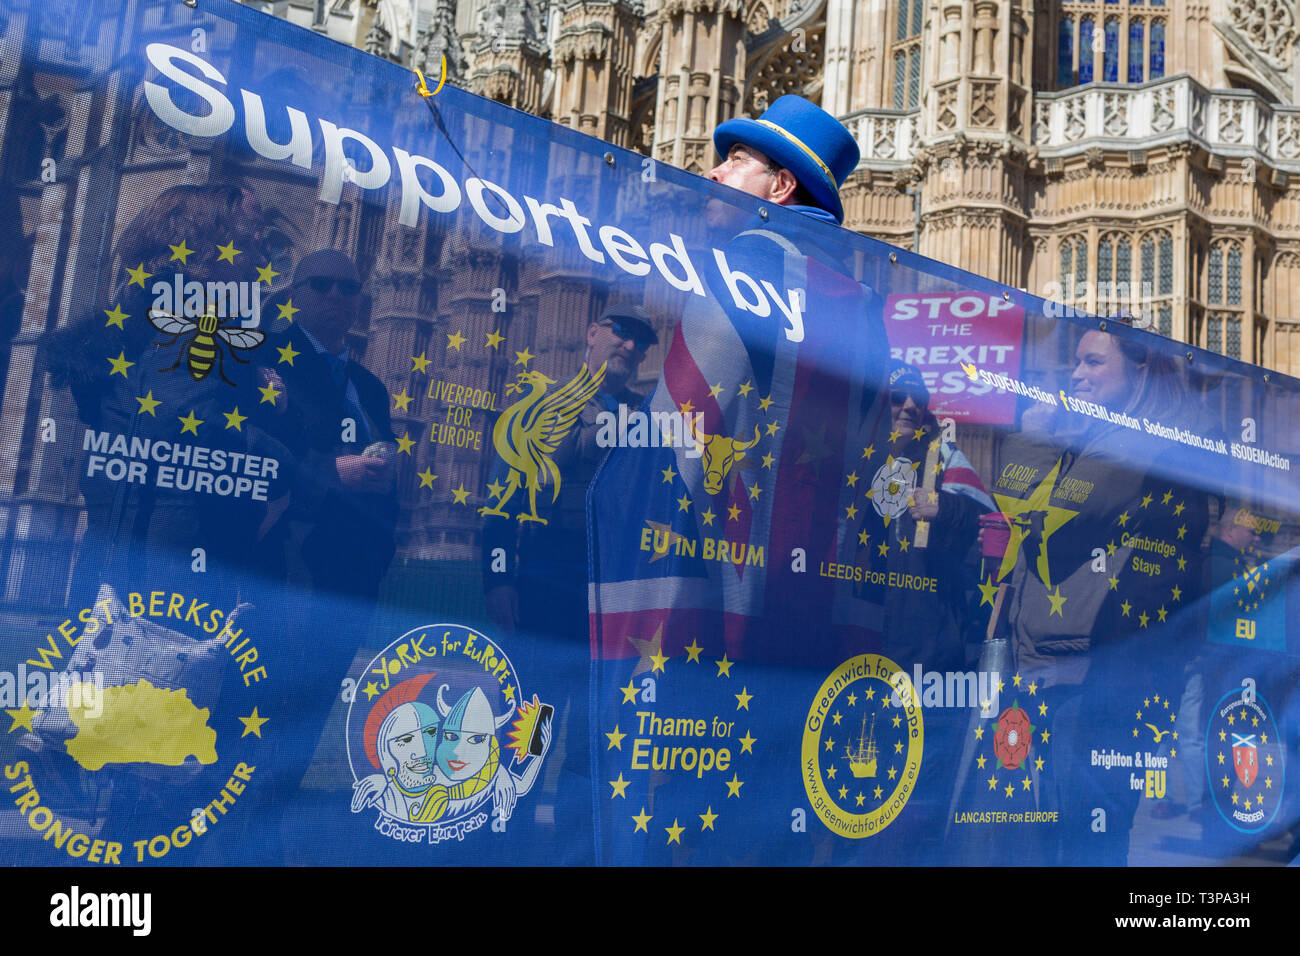 On the day that Prime Minister Theresa May returns to Brussels to negotiate an expected Brexit delay, pro-EU remainers protest outside parliament in Westminster, in London, England. - Stock Image